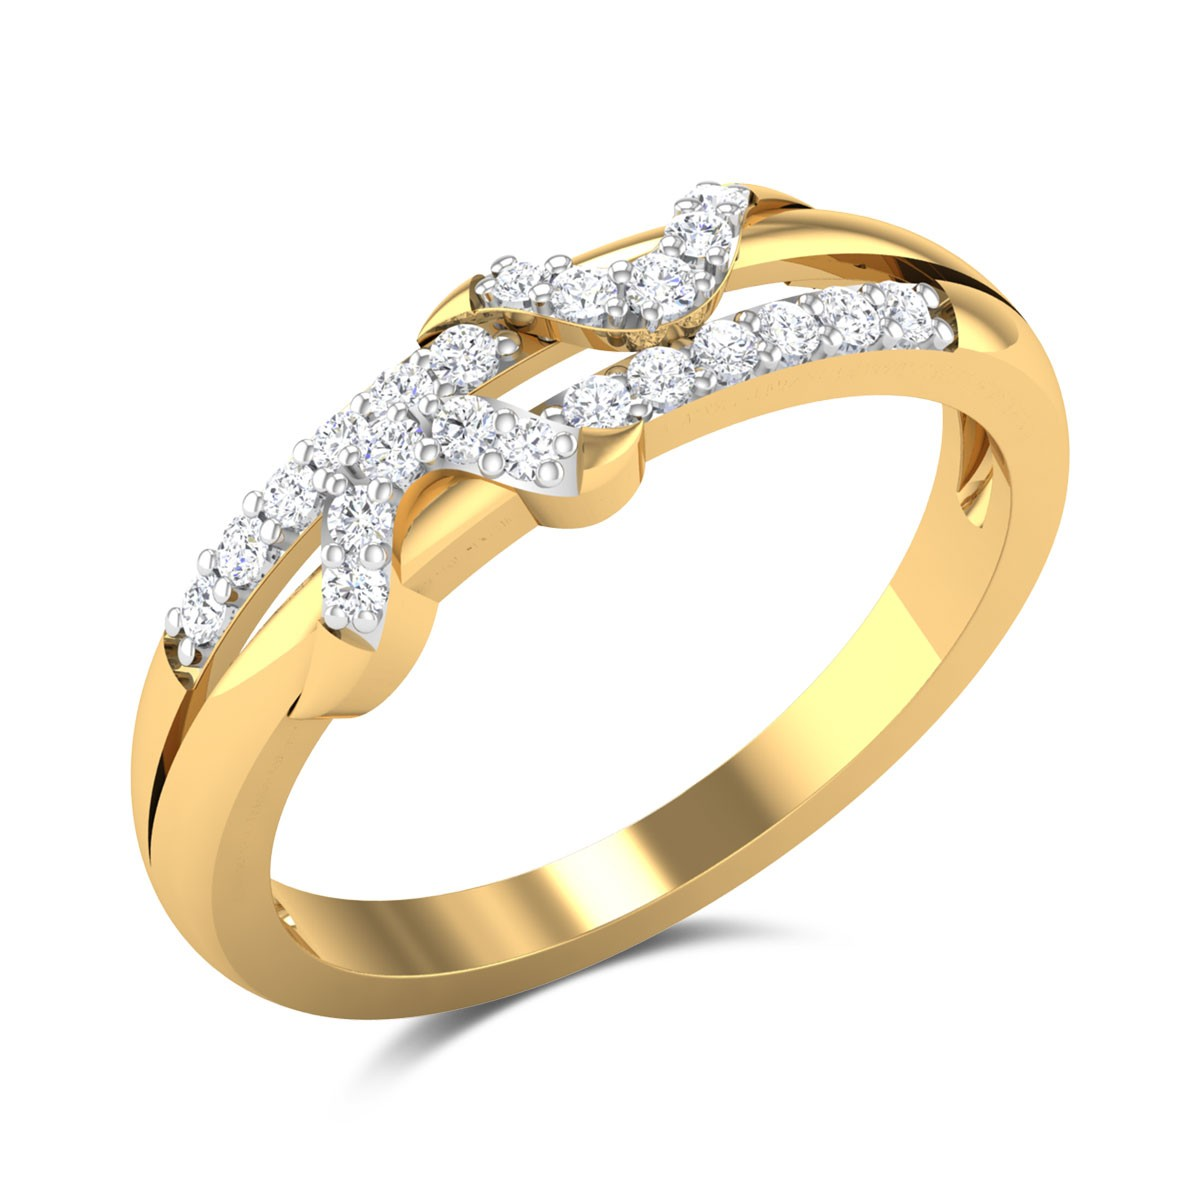 Zuri Diamond Ring